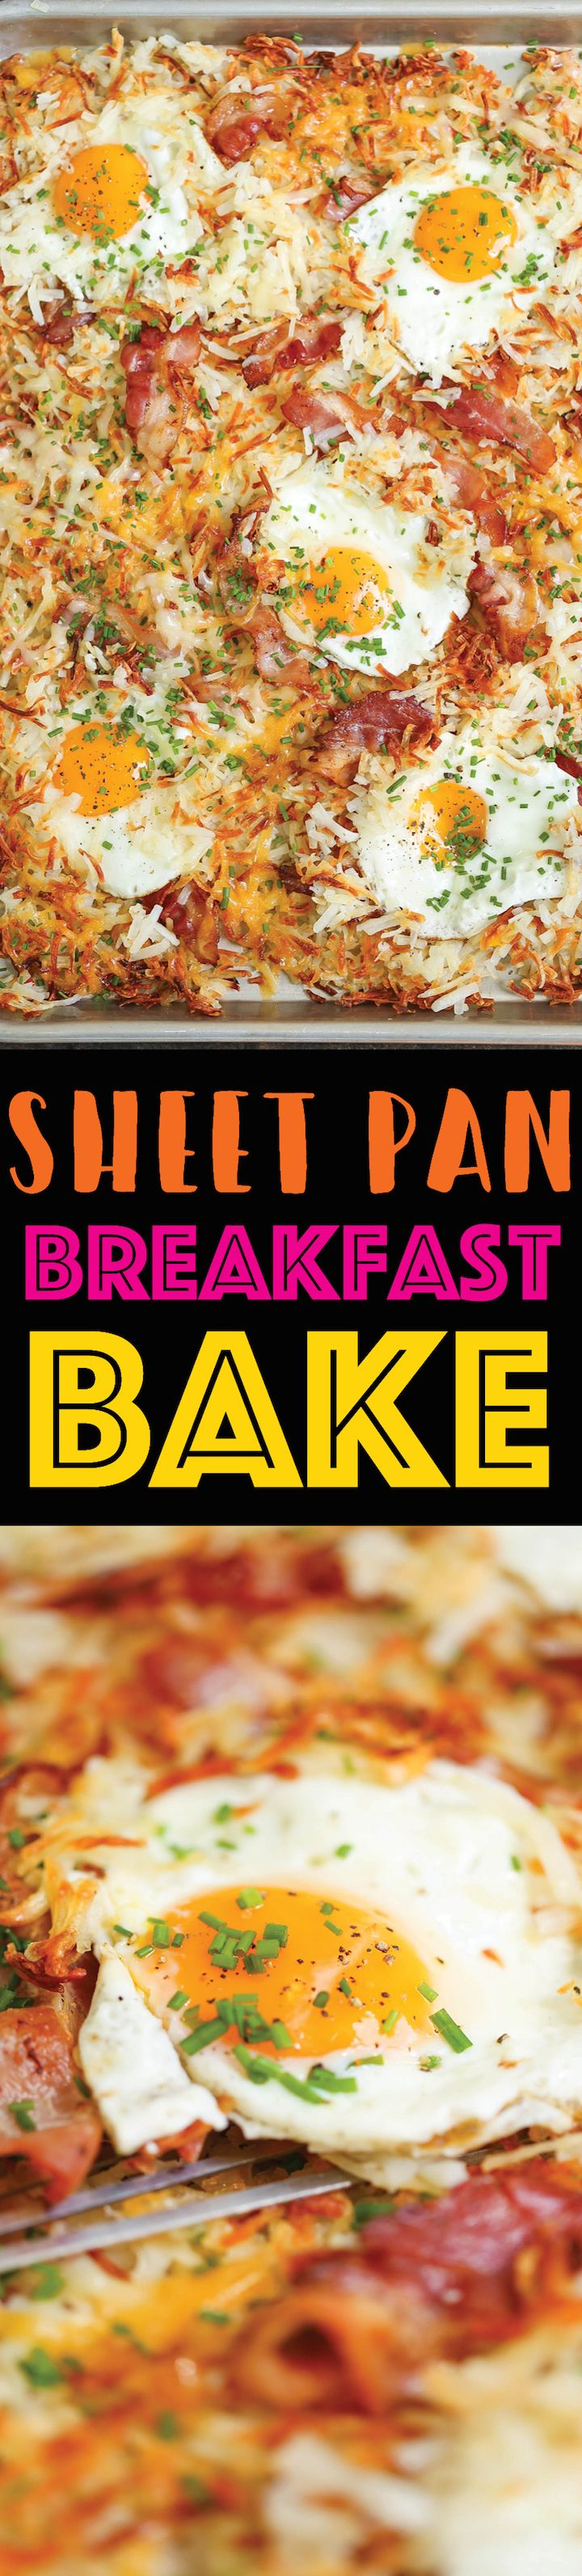 Sheet Pan Breakfast Bake - No need to dirty up another pan! You'll have a FULL BREAKFAST with eggs, bacon and cheesy crisp hash browns on ONE SINGLE PAN!